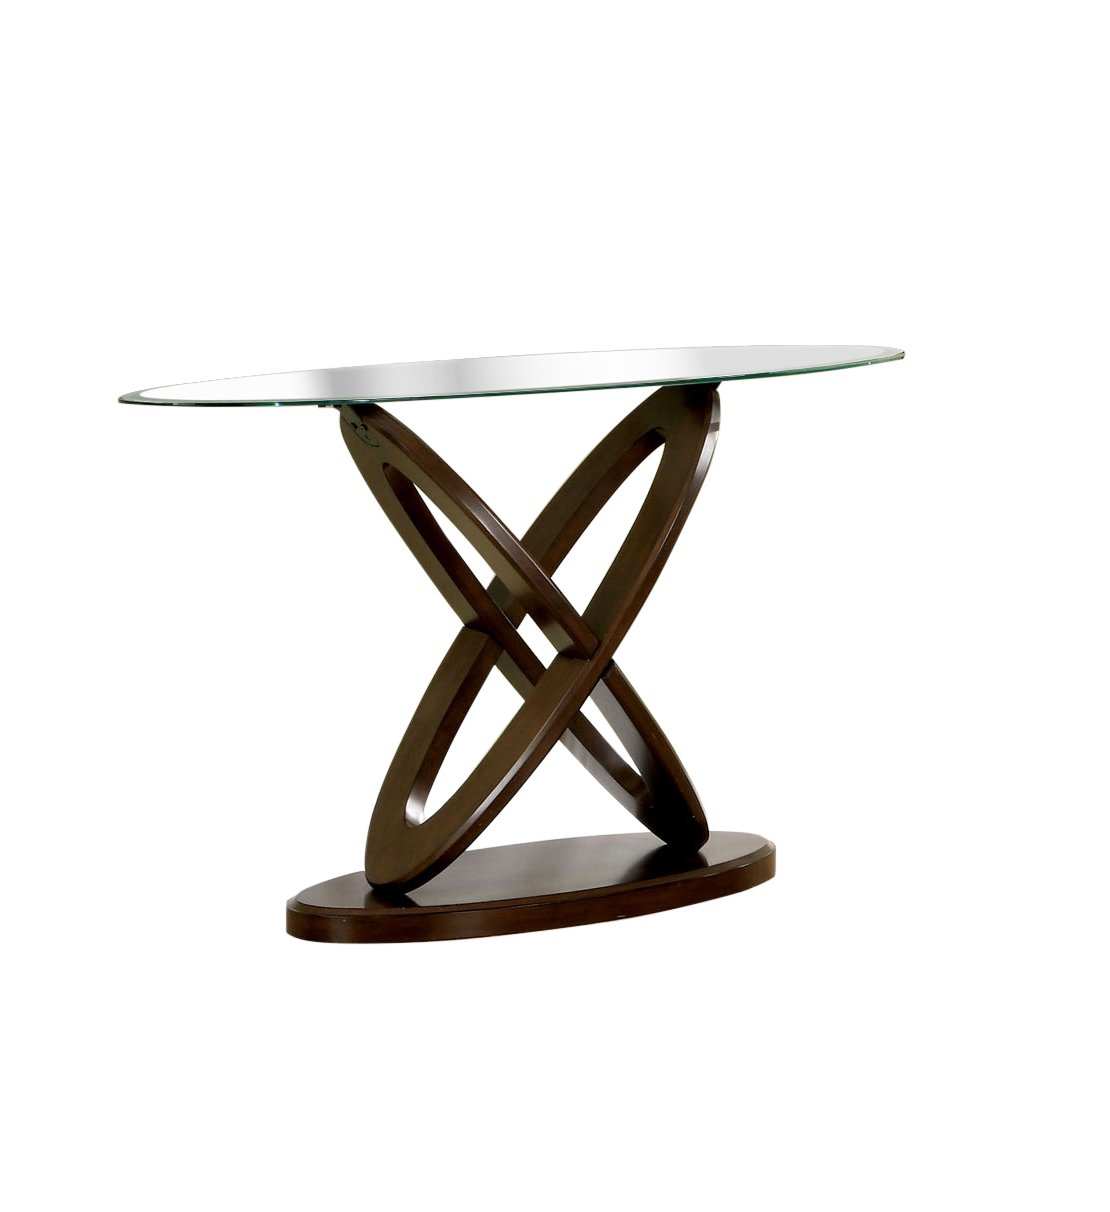 Furniture of America Xenda Sofa Table with 8mm Tempered Glass Top and Cross Shaped Base, Dark Walnut Finish by Furniture of America